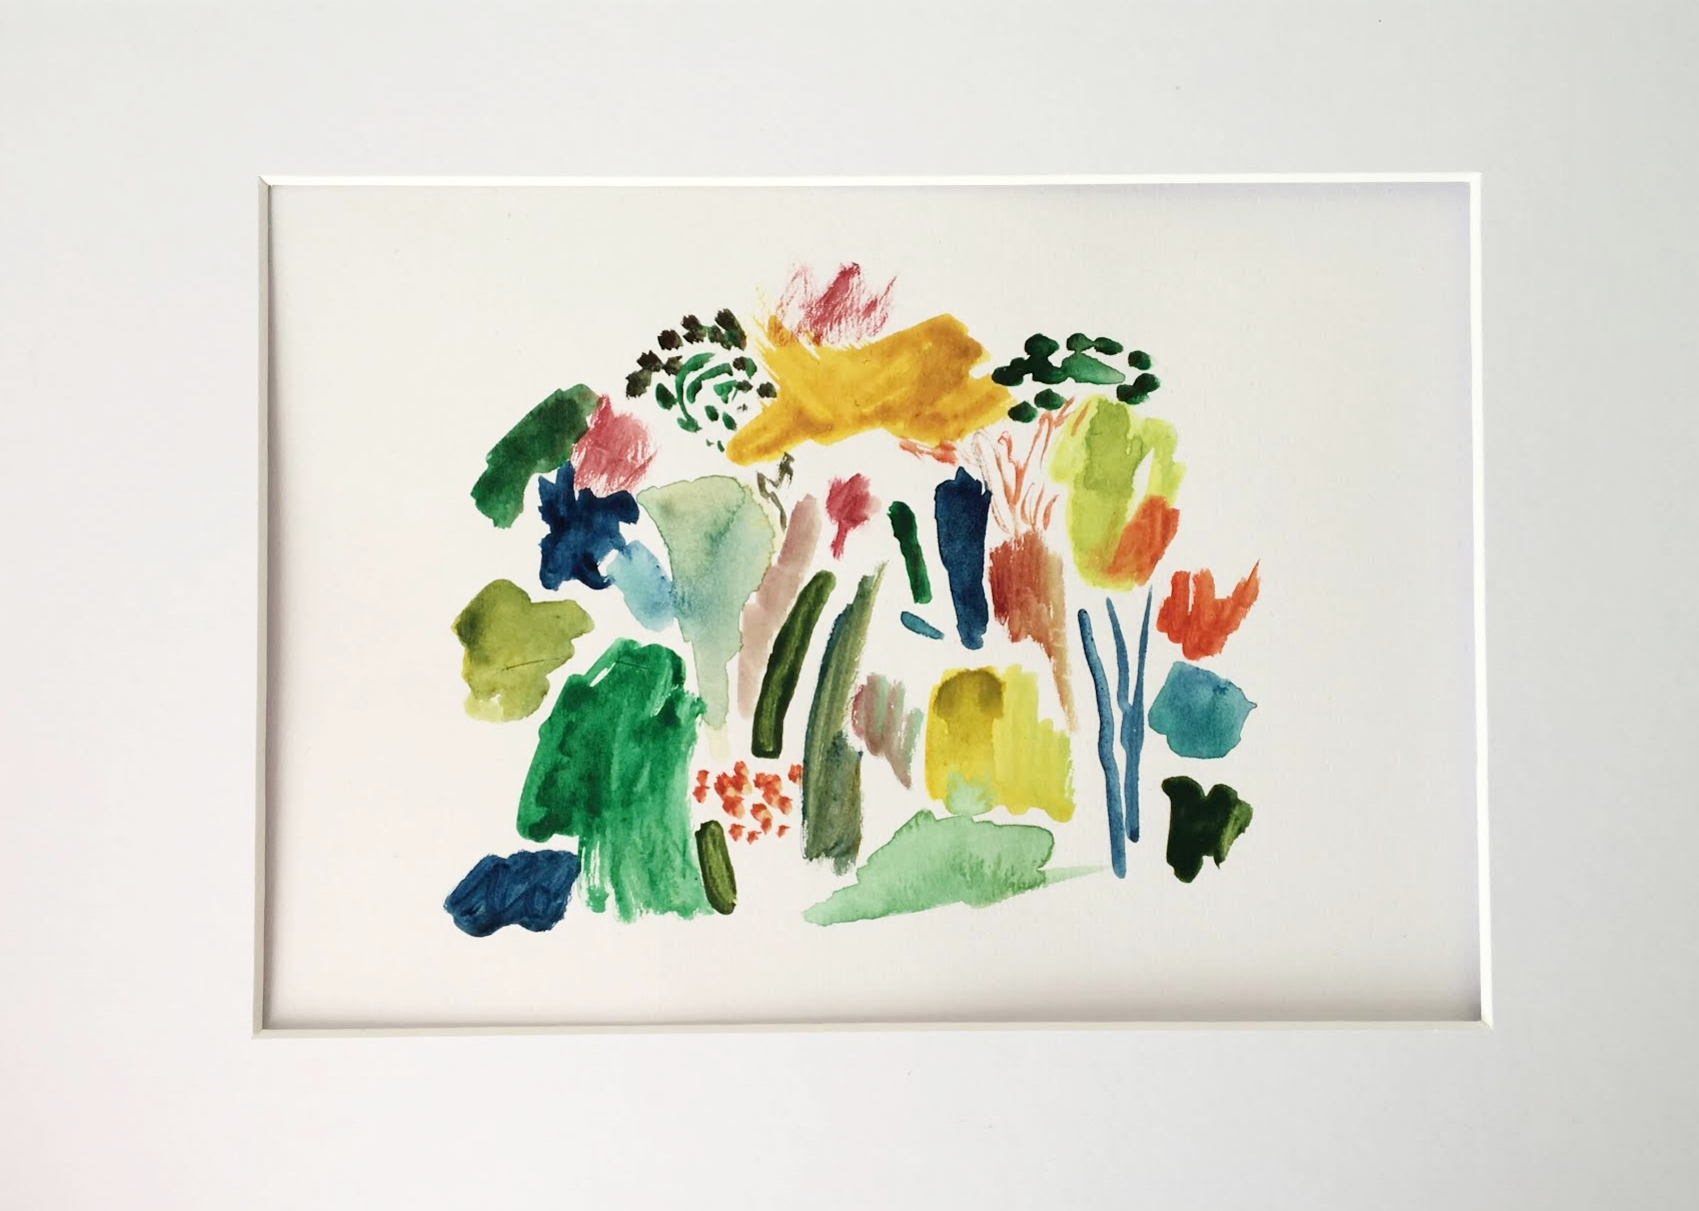 'Bursts of Joy' watercolour on paper, by Laura Gee